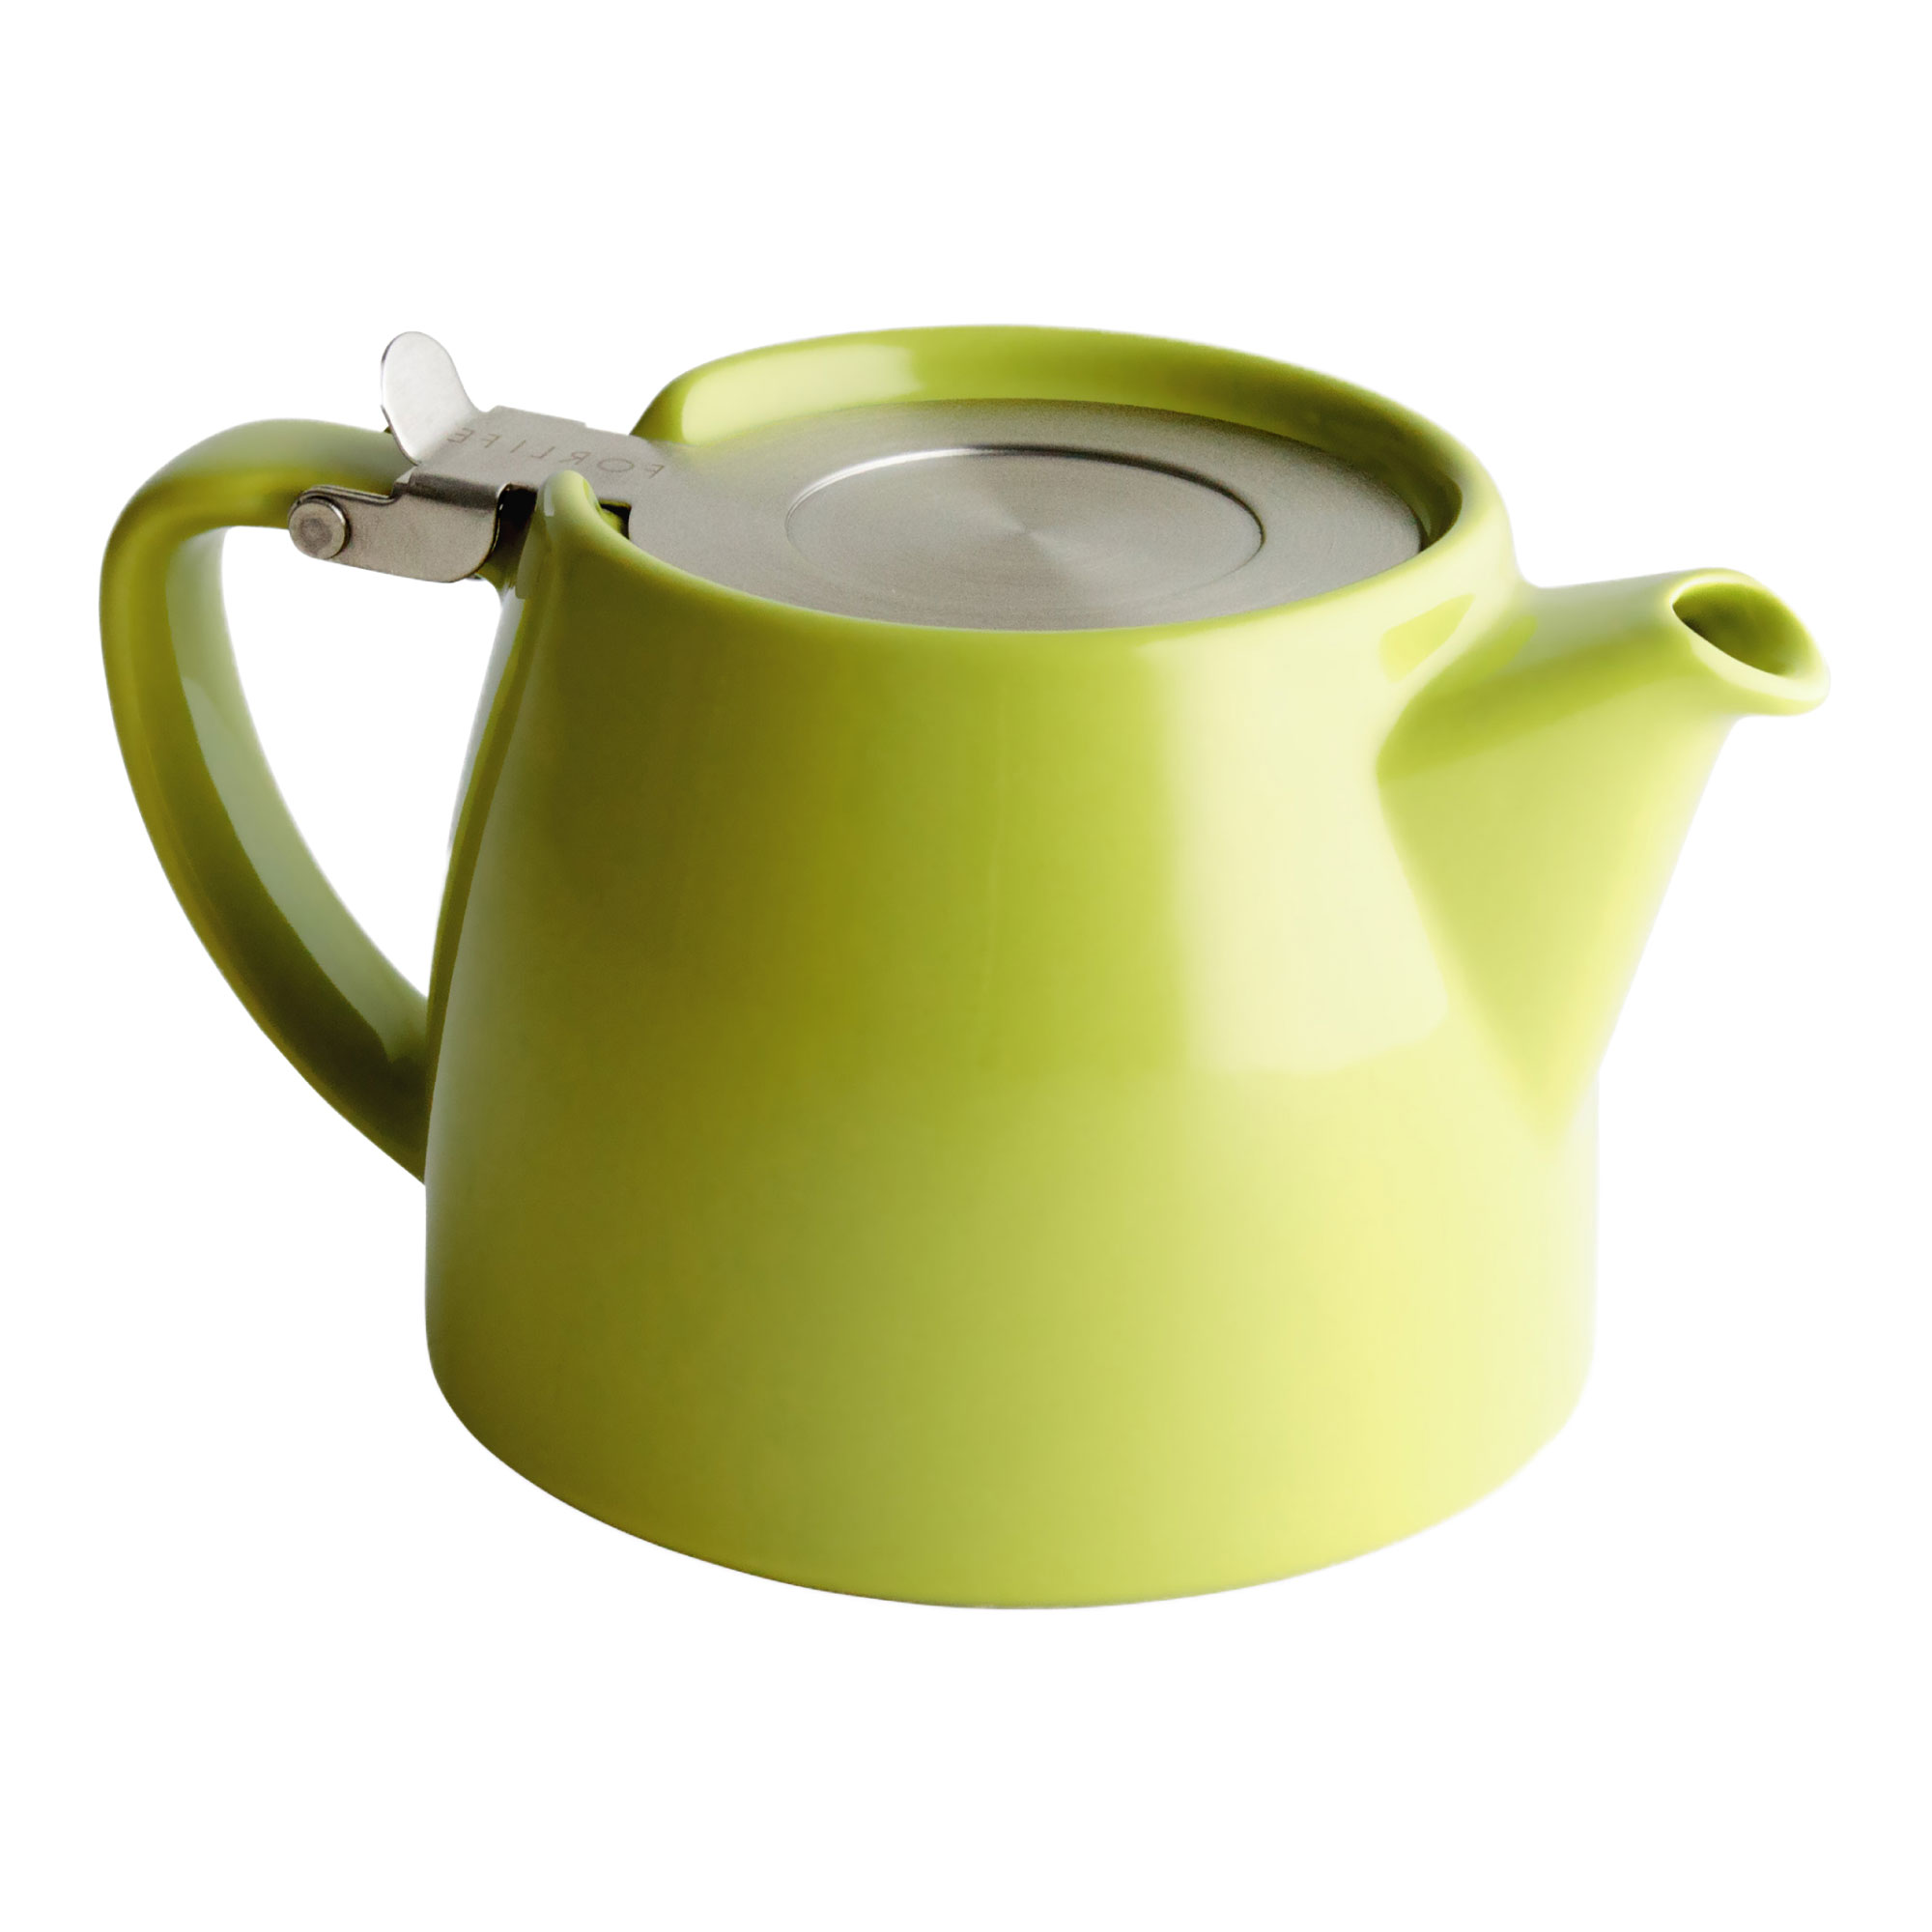 Lime Green Tea Pot for Infusing Loose Leaf Tea